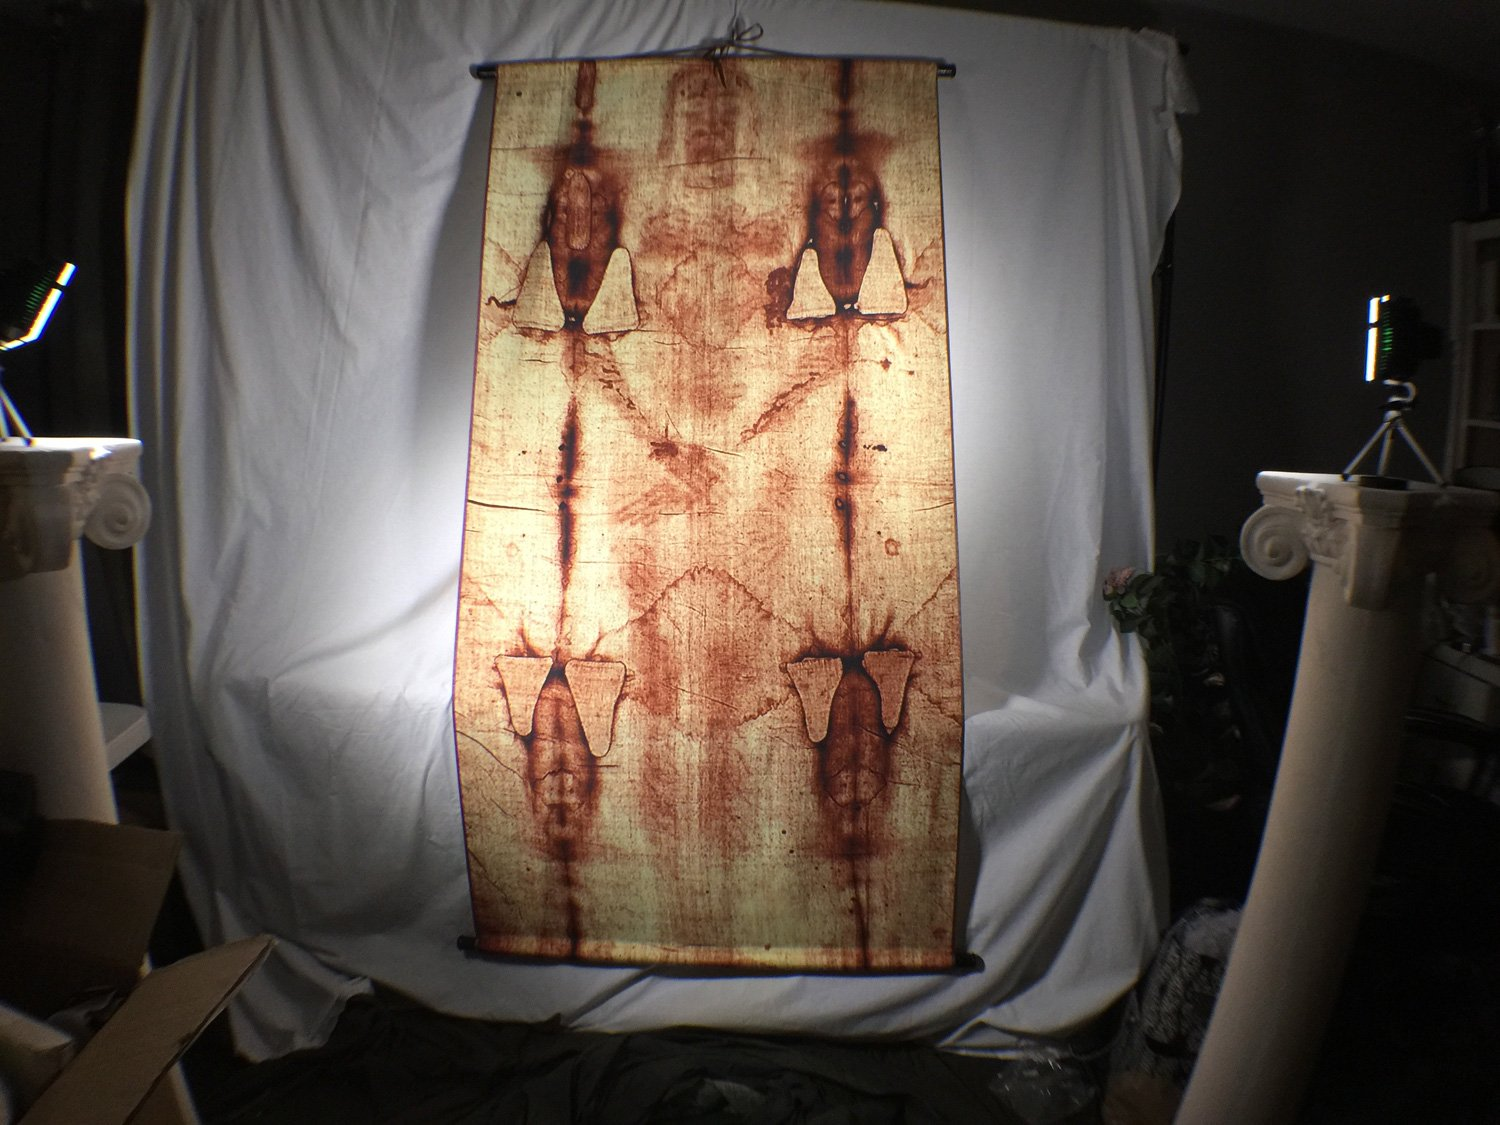 Shroud of Turin Full Size Body Sepia on Linen Cloth 6 X 3 Feet with Free Book by Reel Art